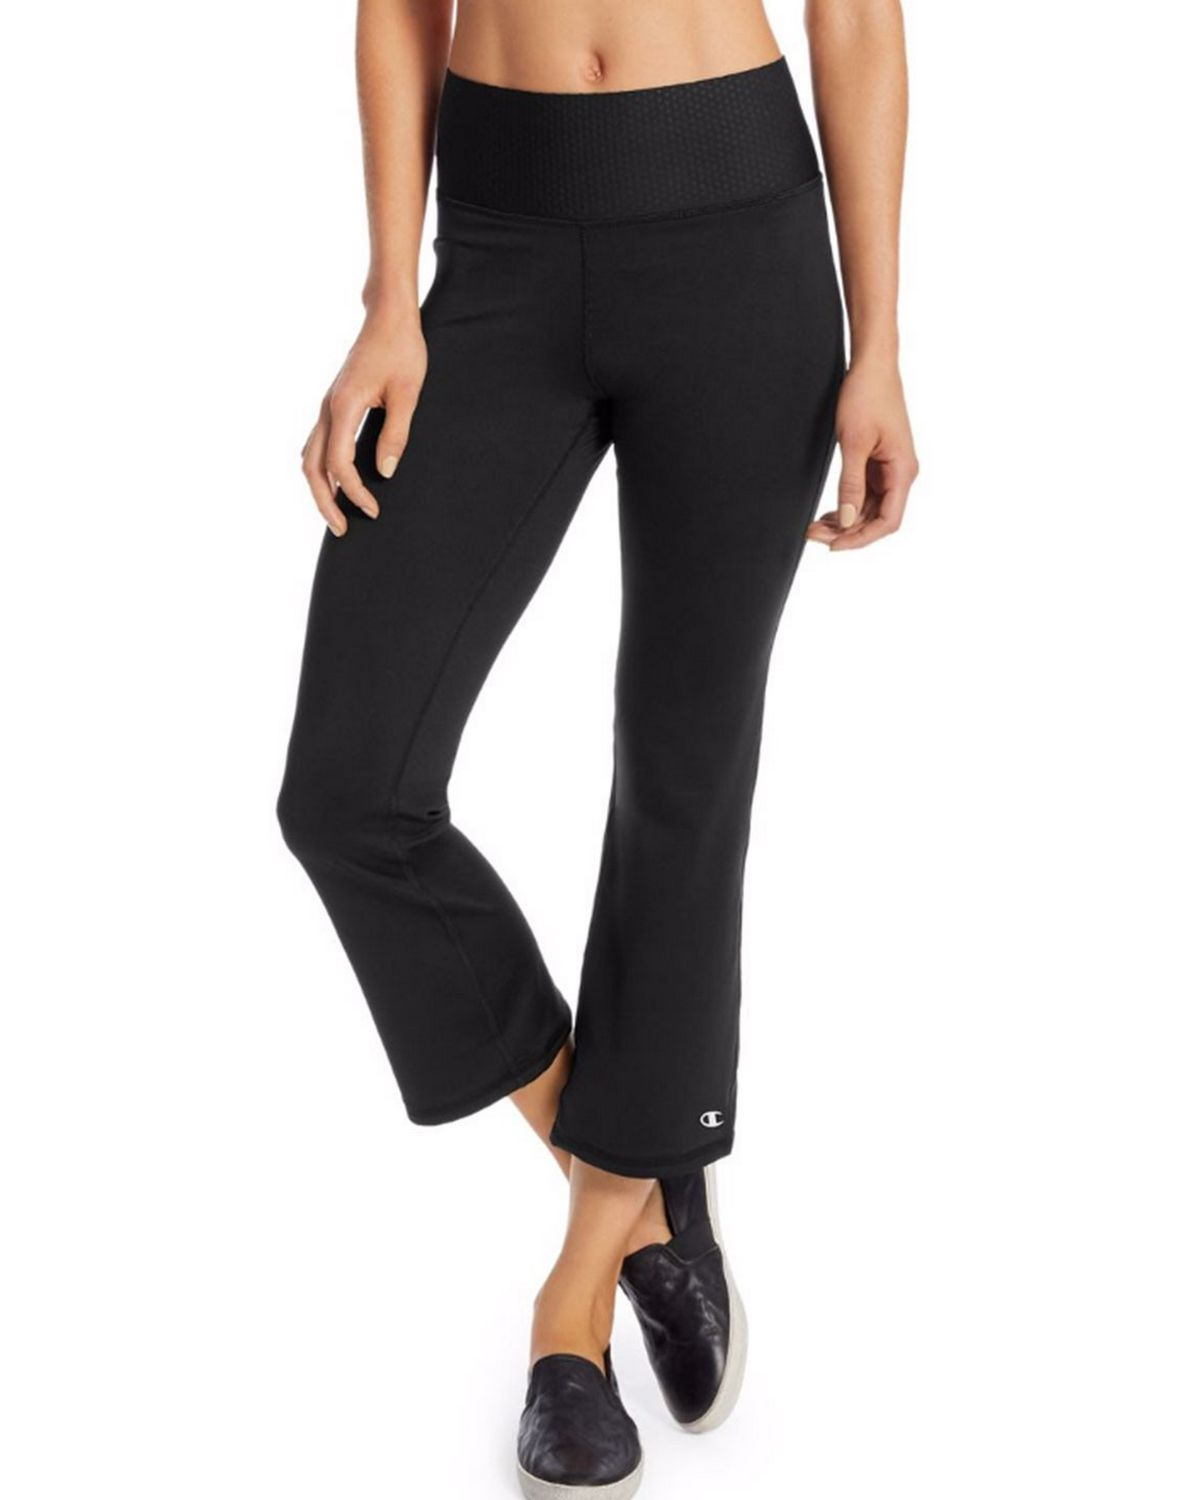 Champion M31617 Women Flare Pants - Black - S M31617